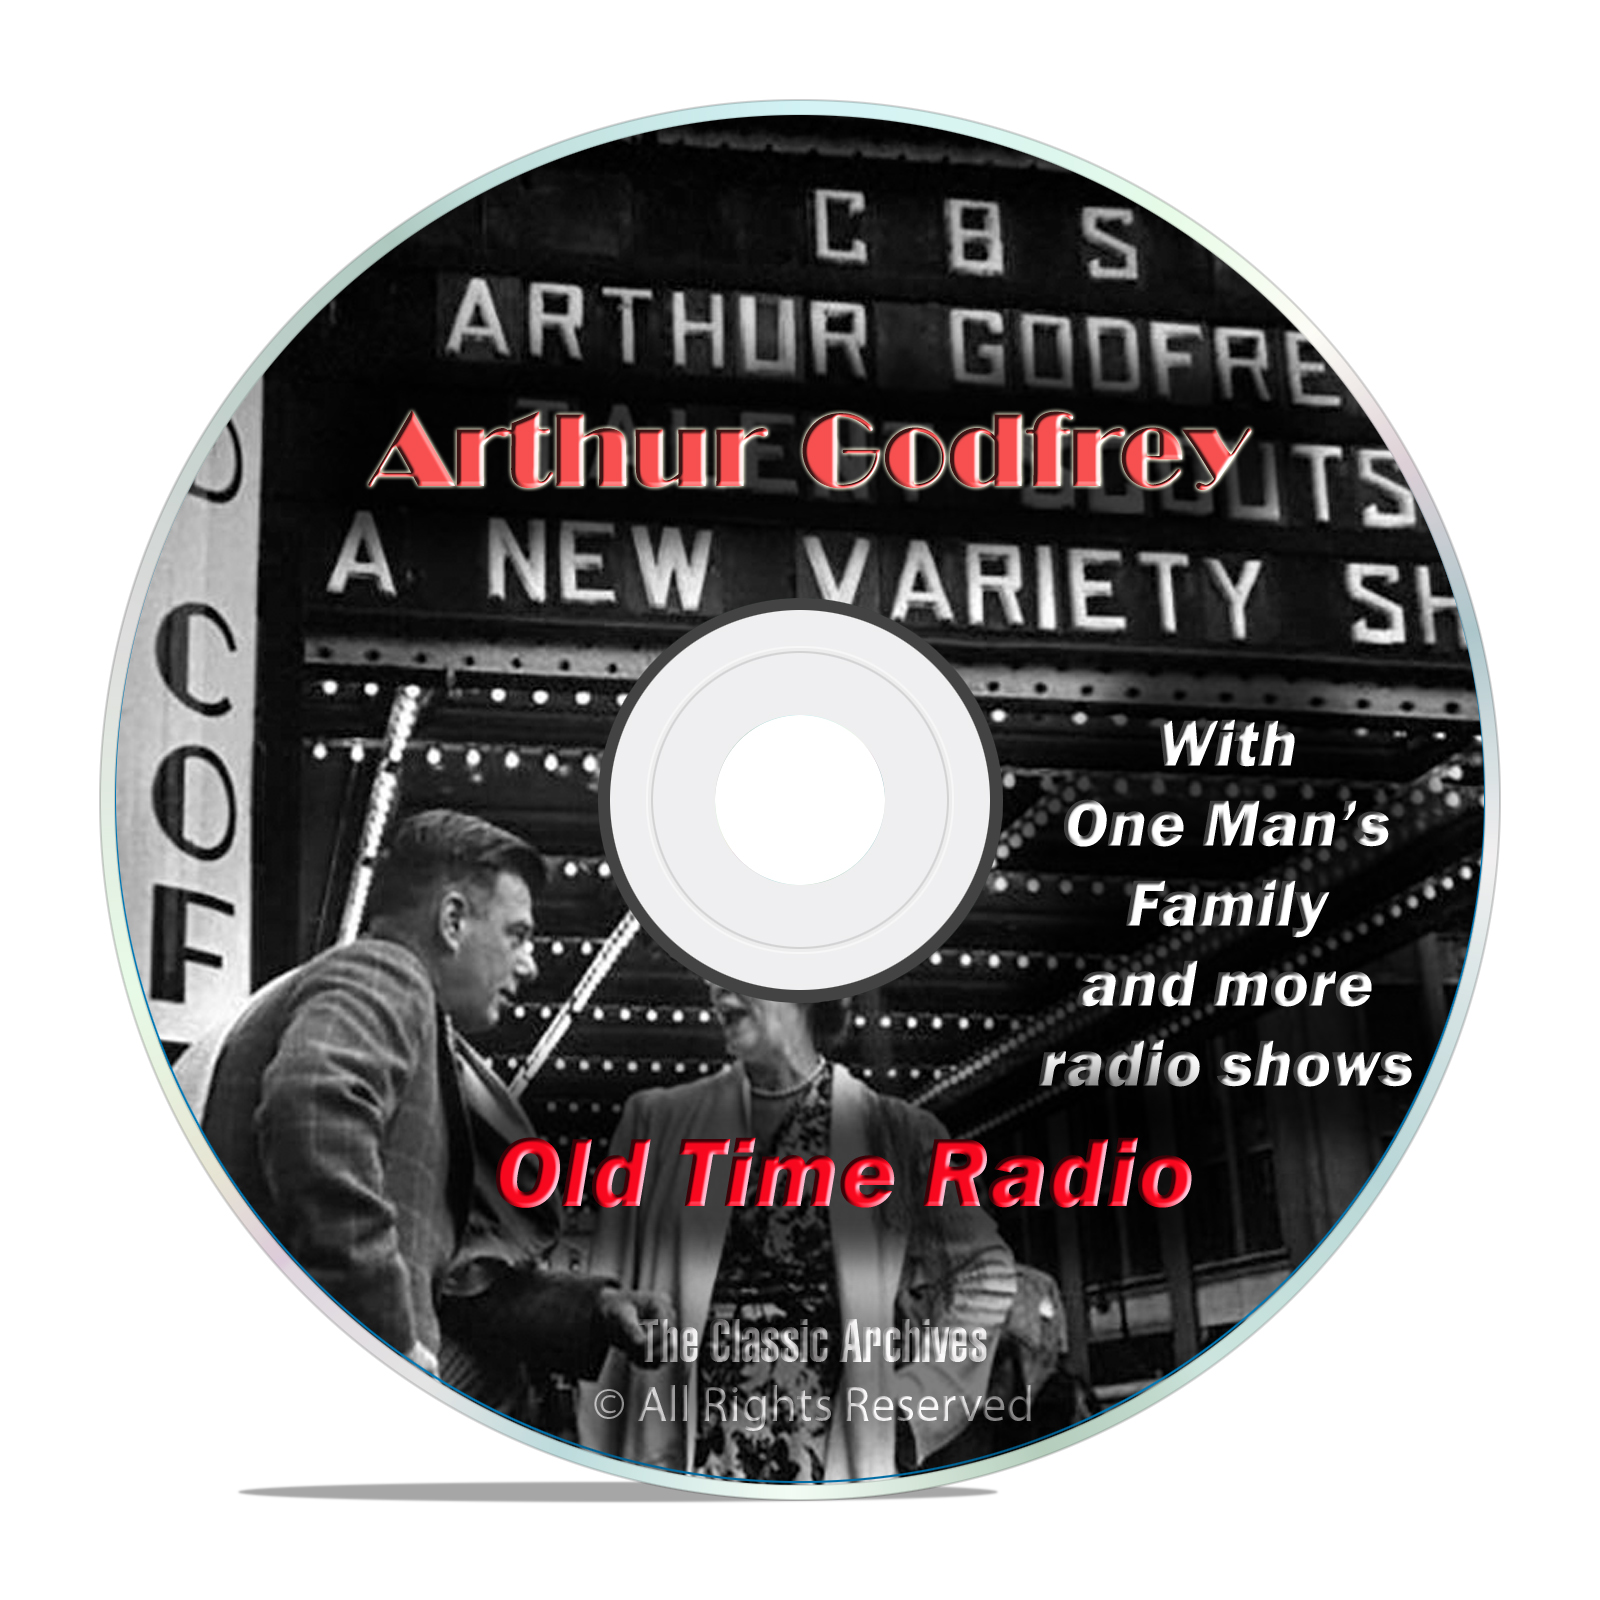 Arthur Godfrey, 1,382 Classic Old Time Radio Shows Horror Thriller OTR DVD - Click Image to Close